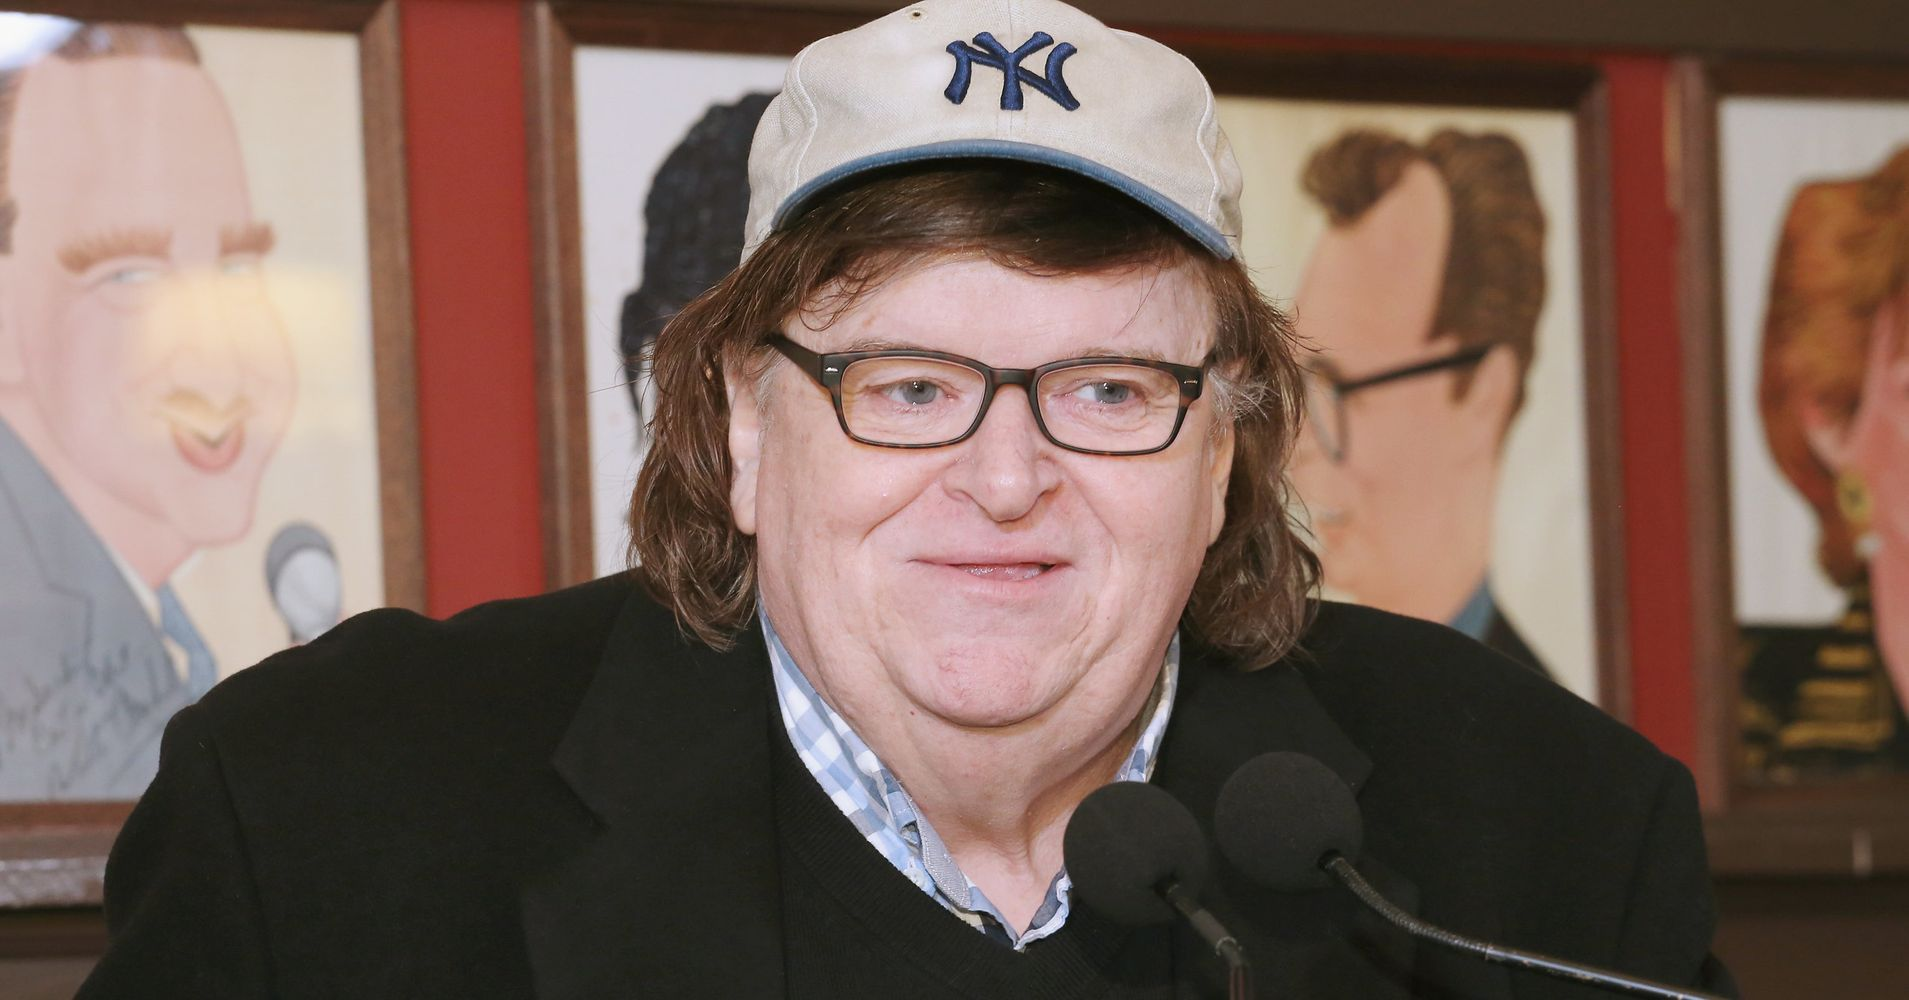 Michael Moore Vows To Defeat Donald Trump With New Documentary - HuffPost